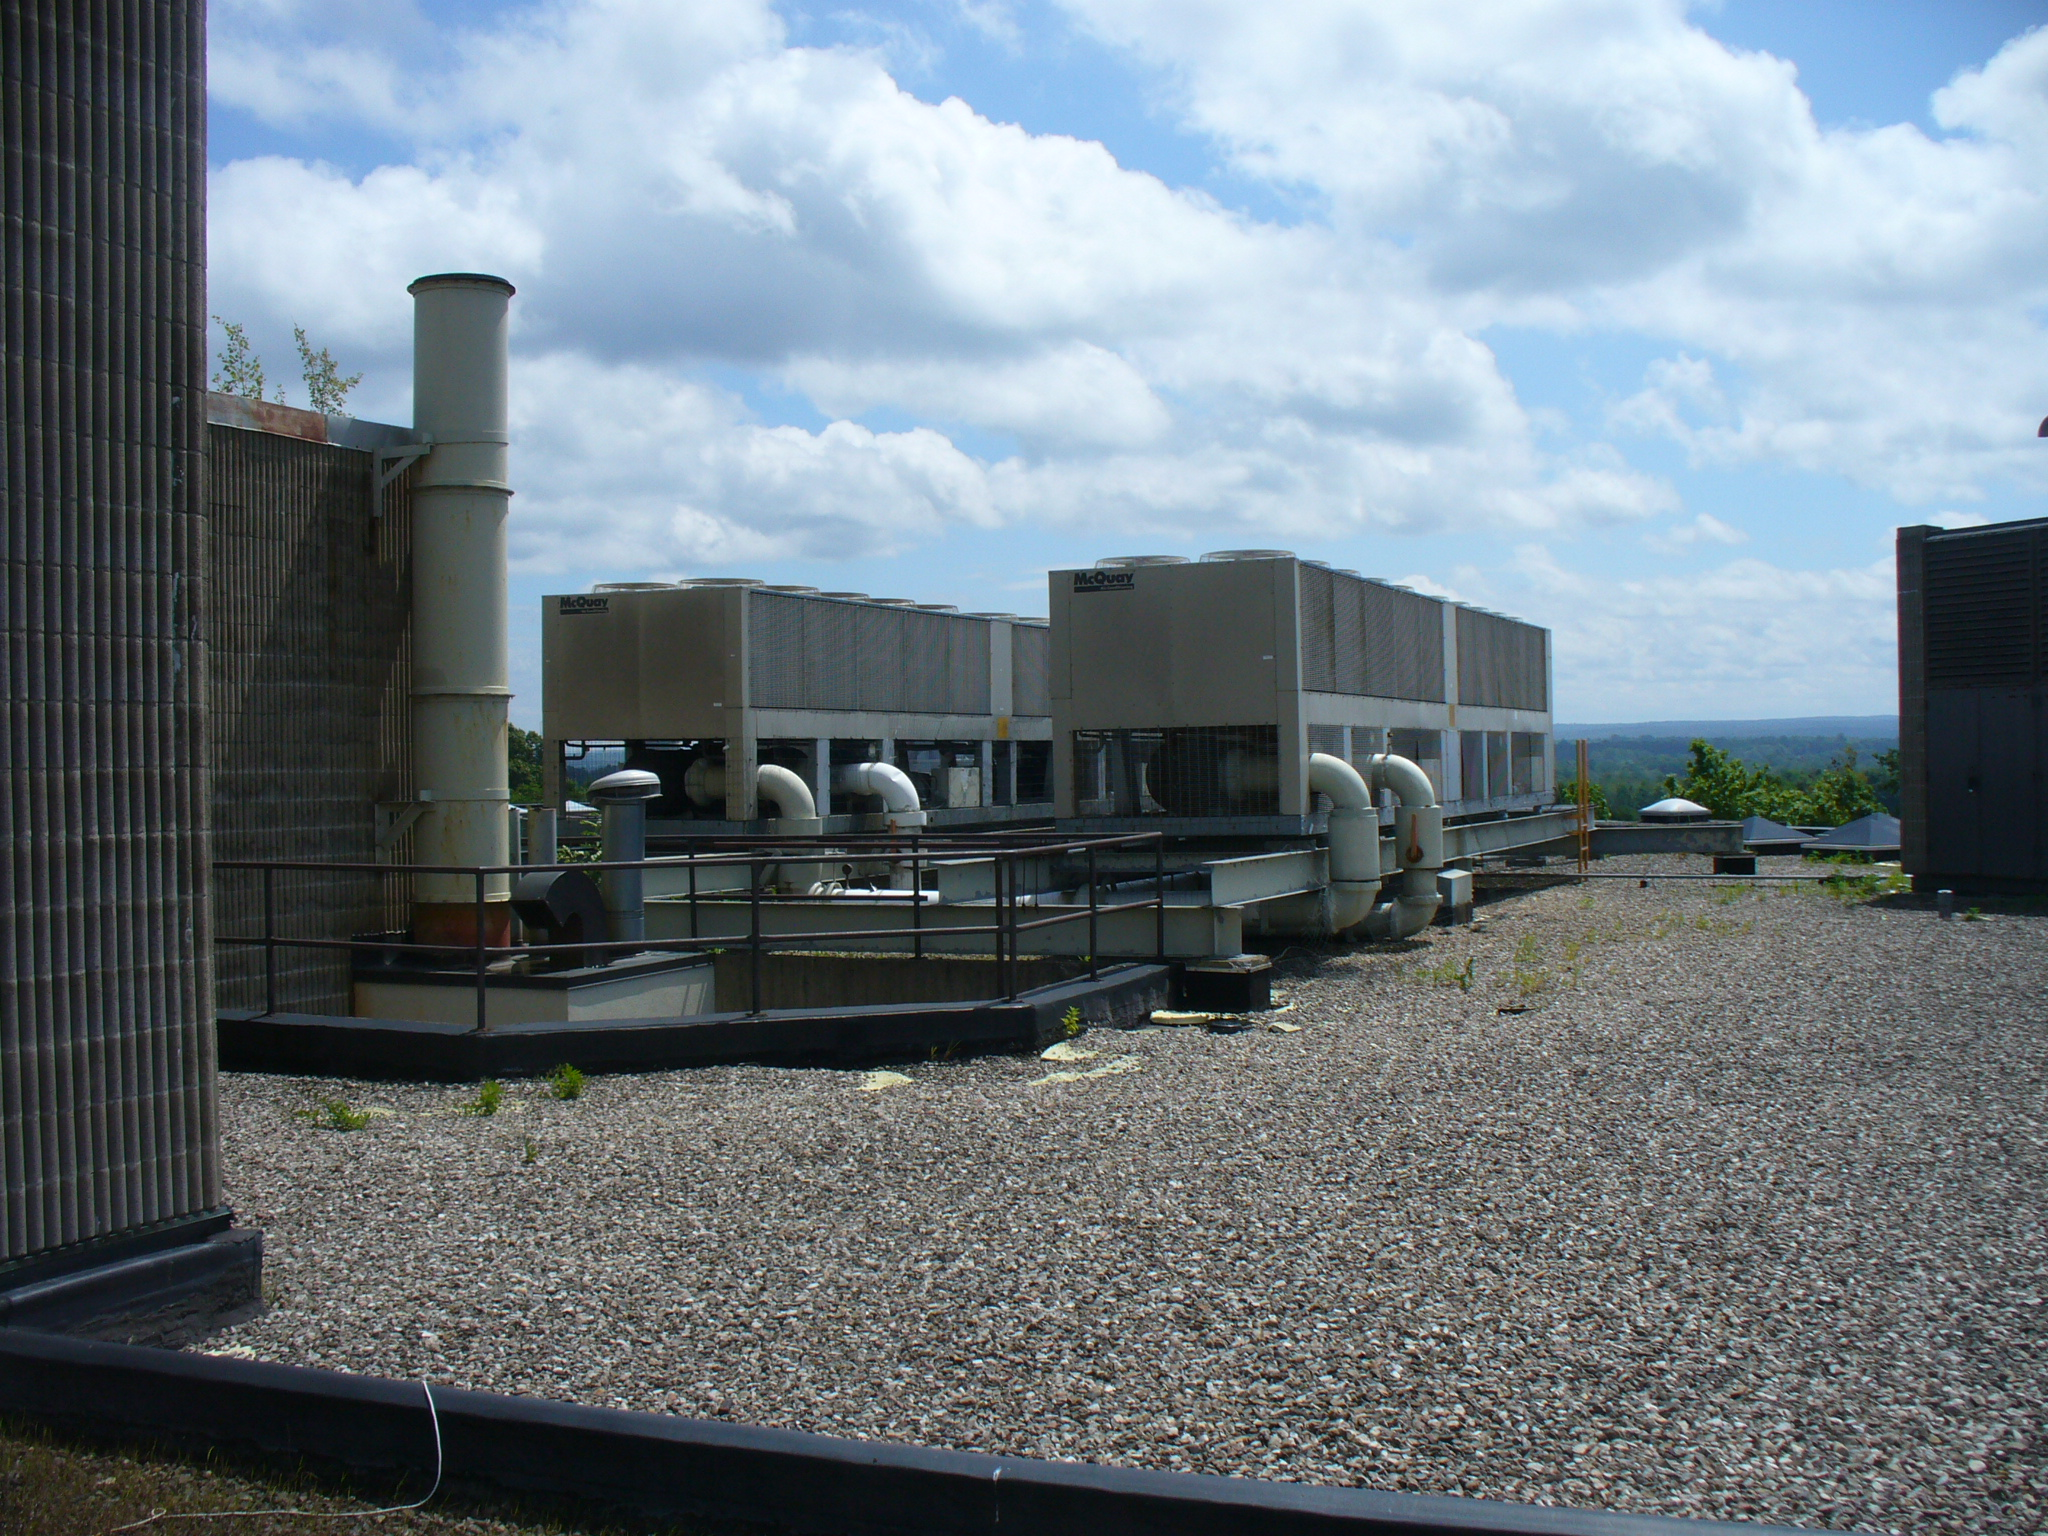 Chiller Plant Replacement - Analysis of Chiller Plant Replacement